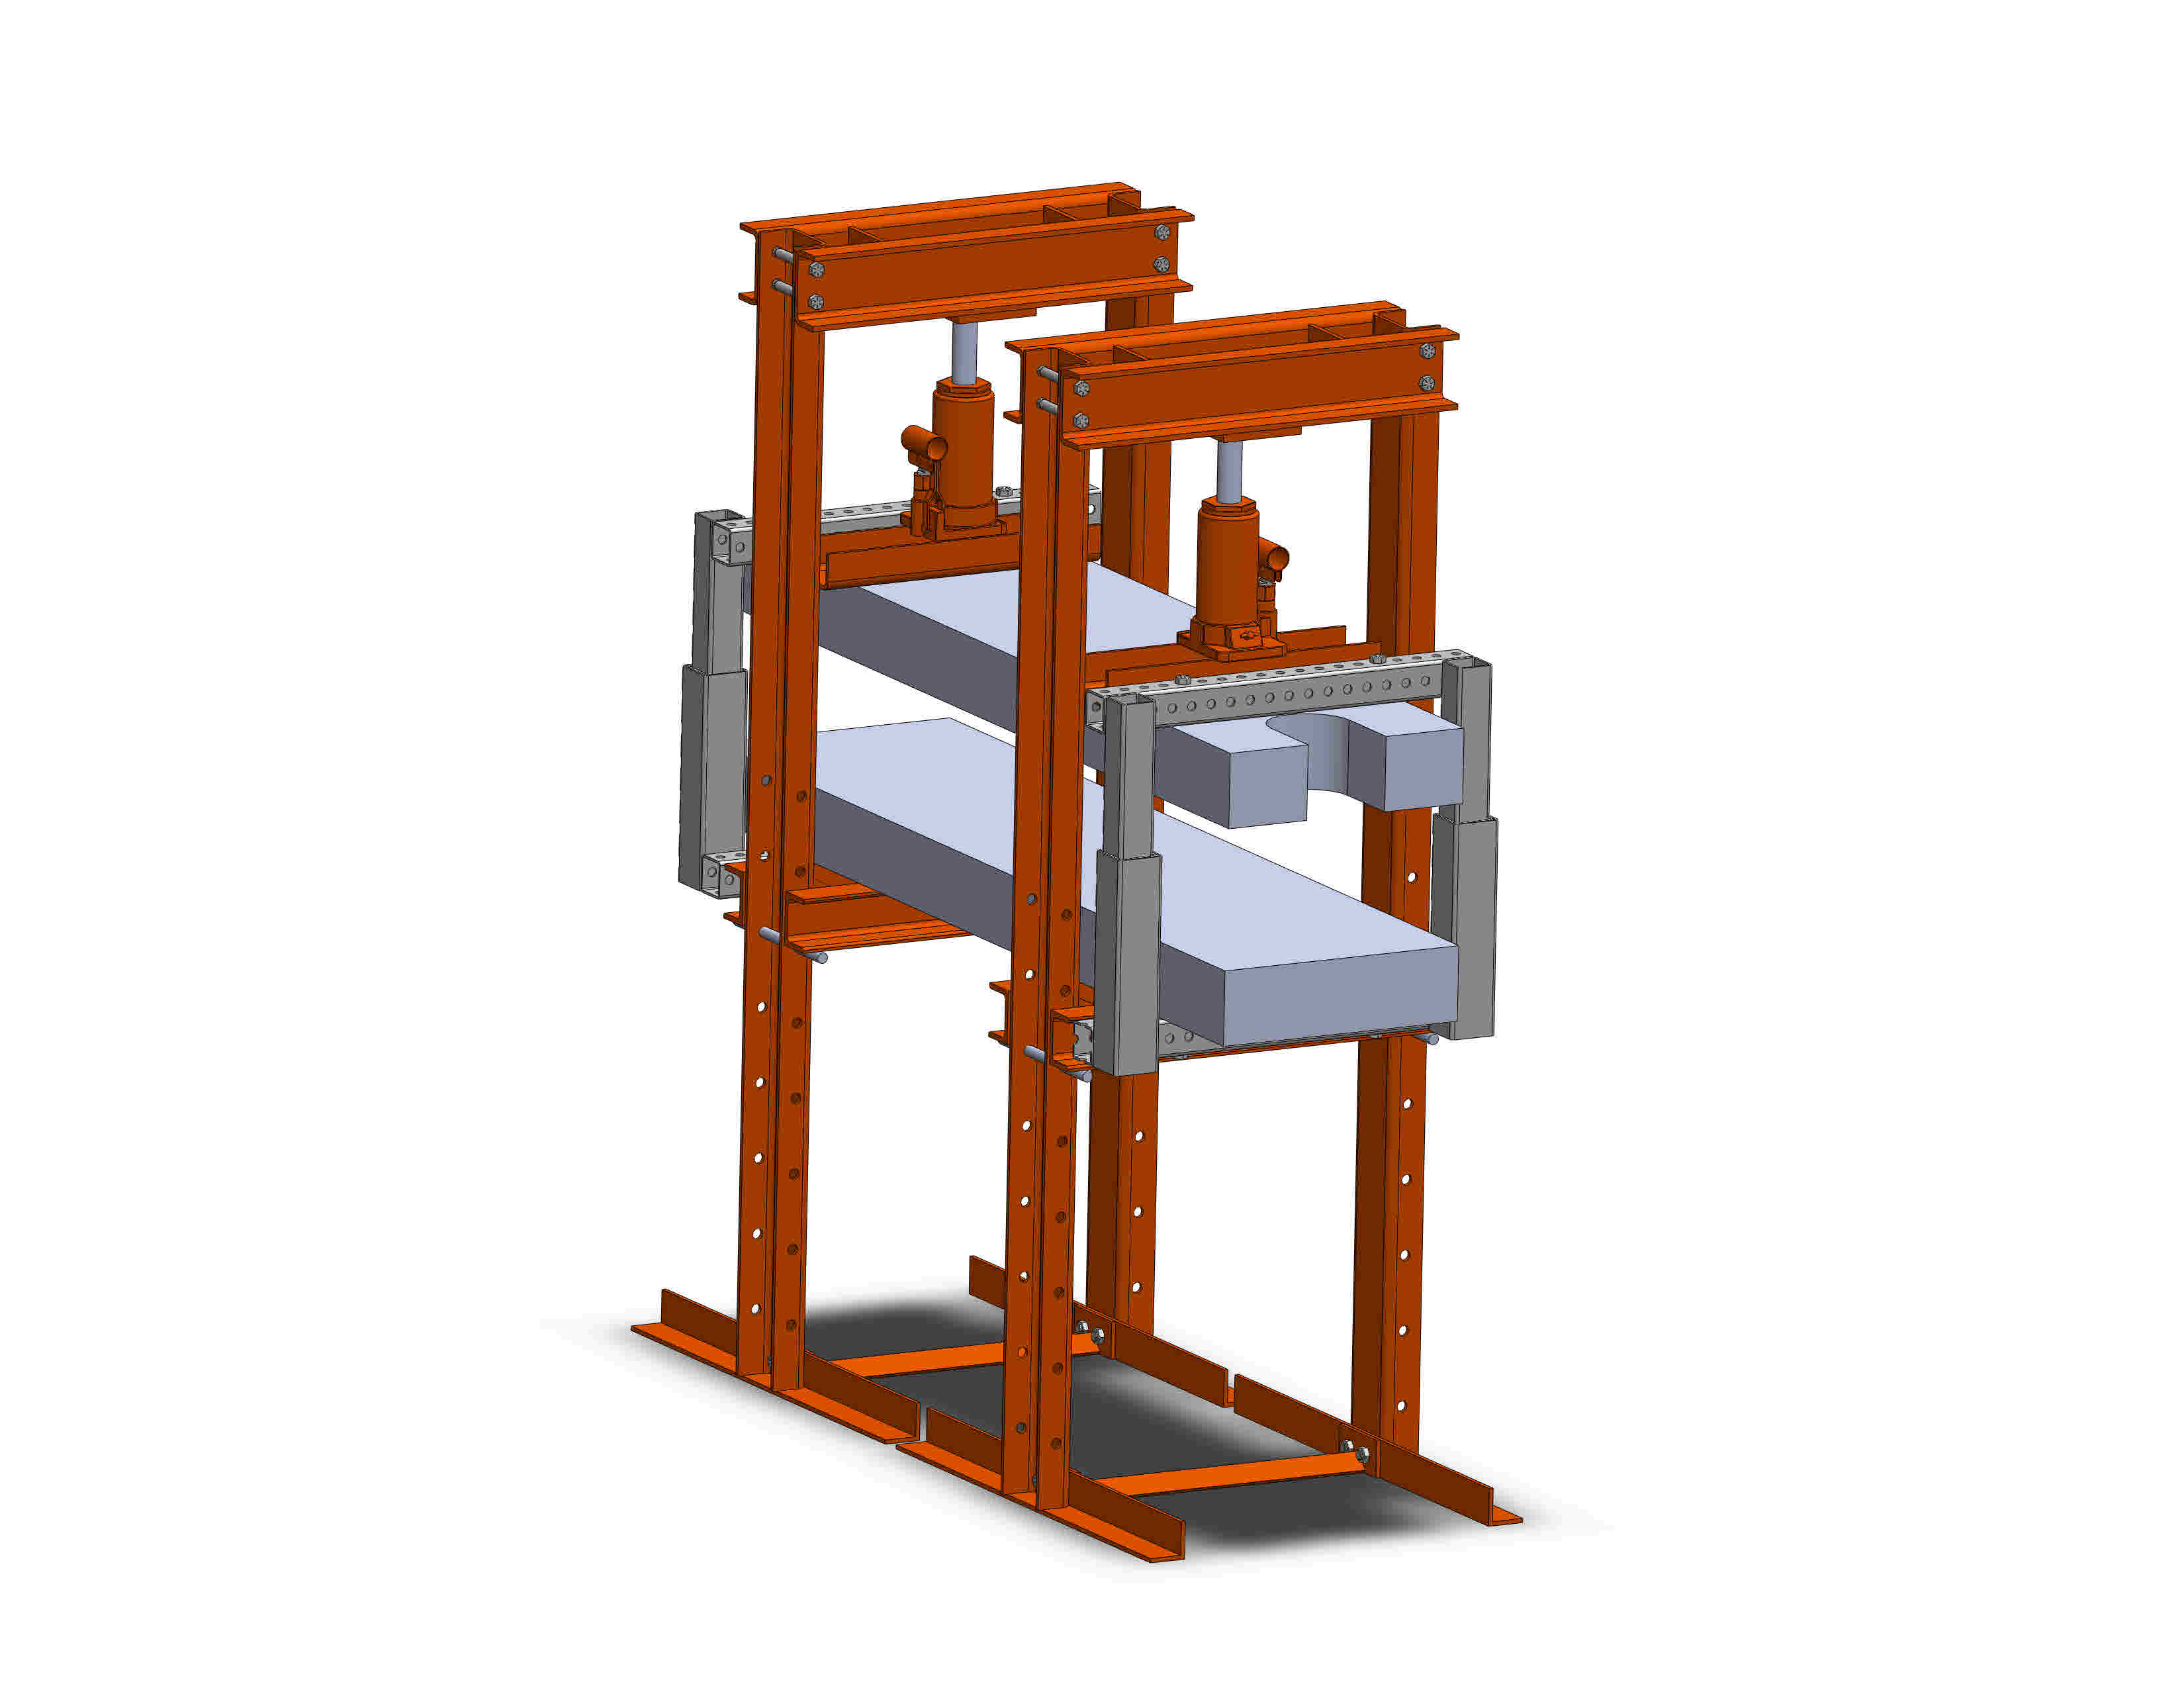 SolidWorks model of a complete presses and alignment system